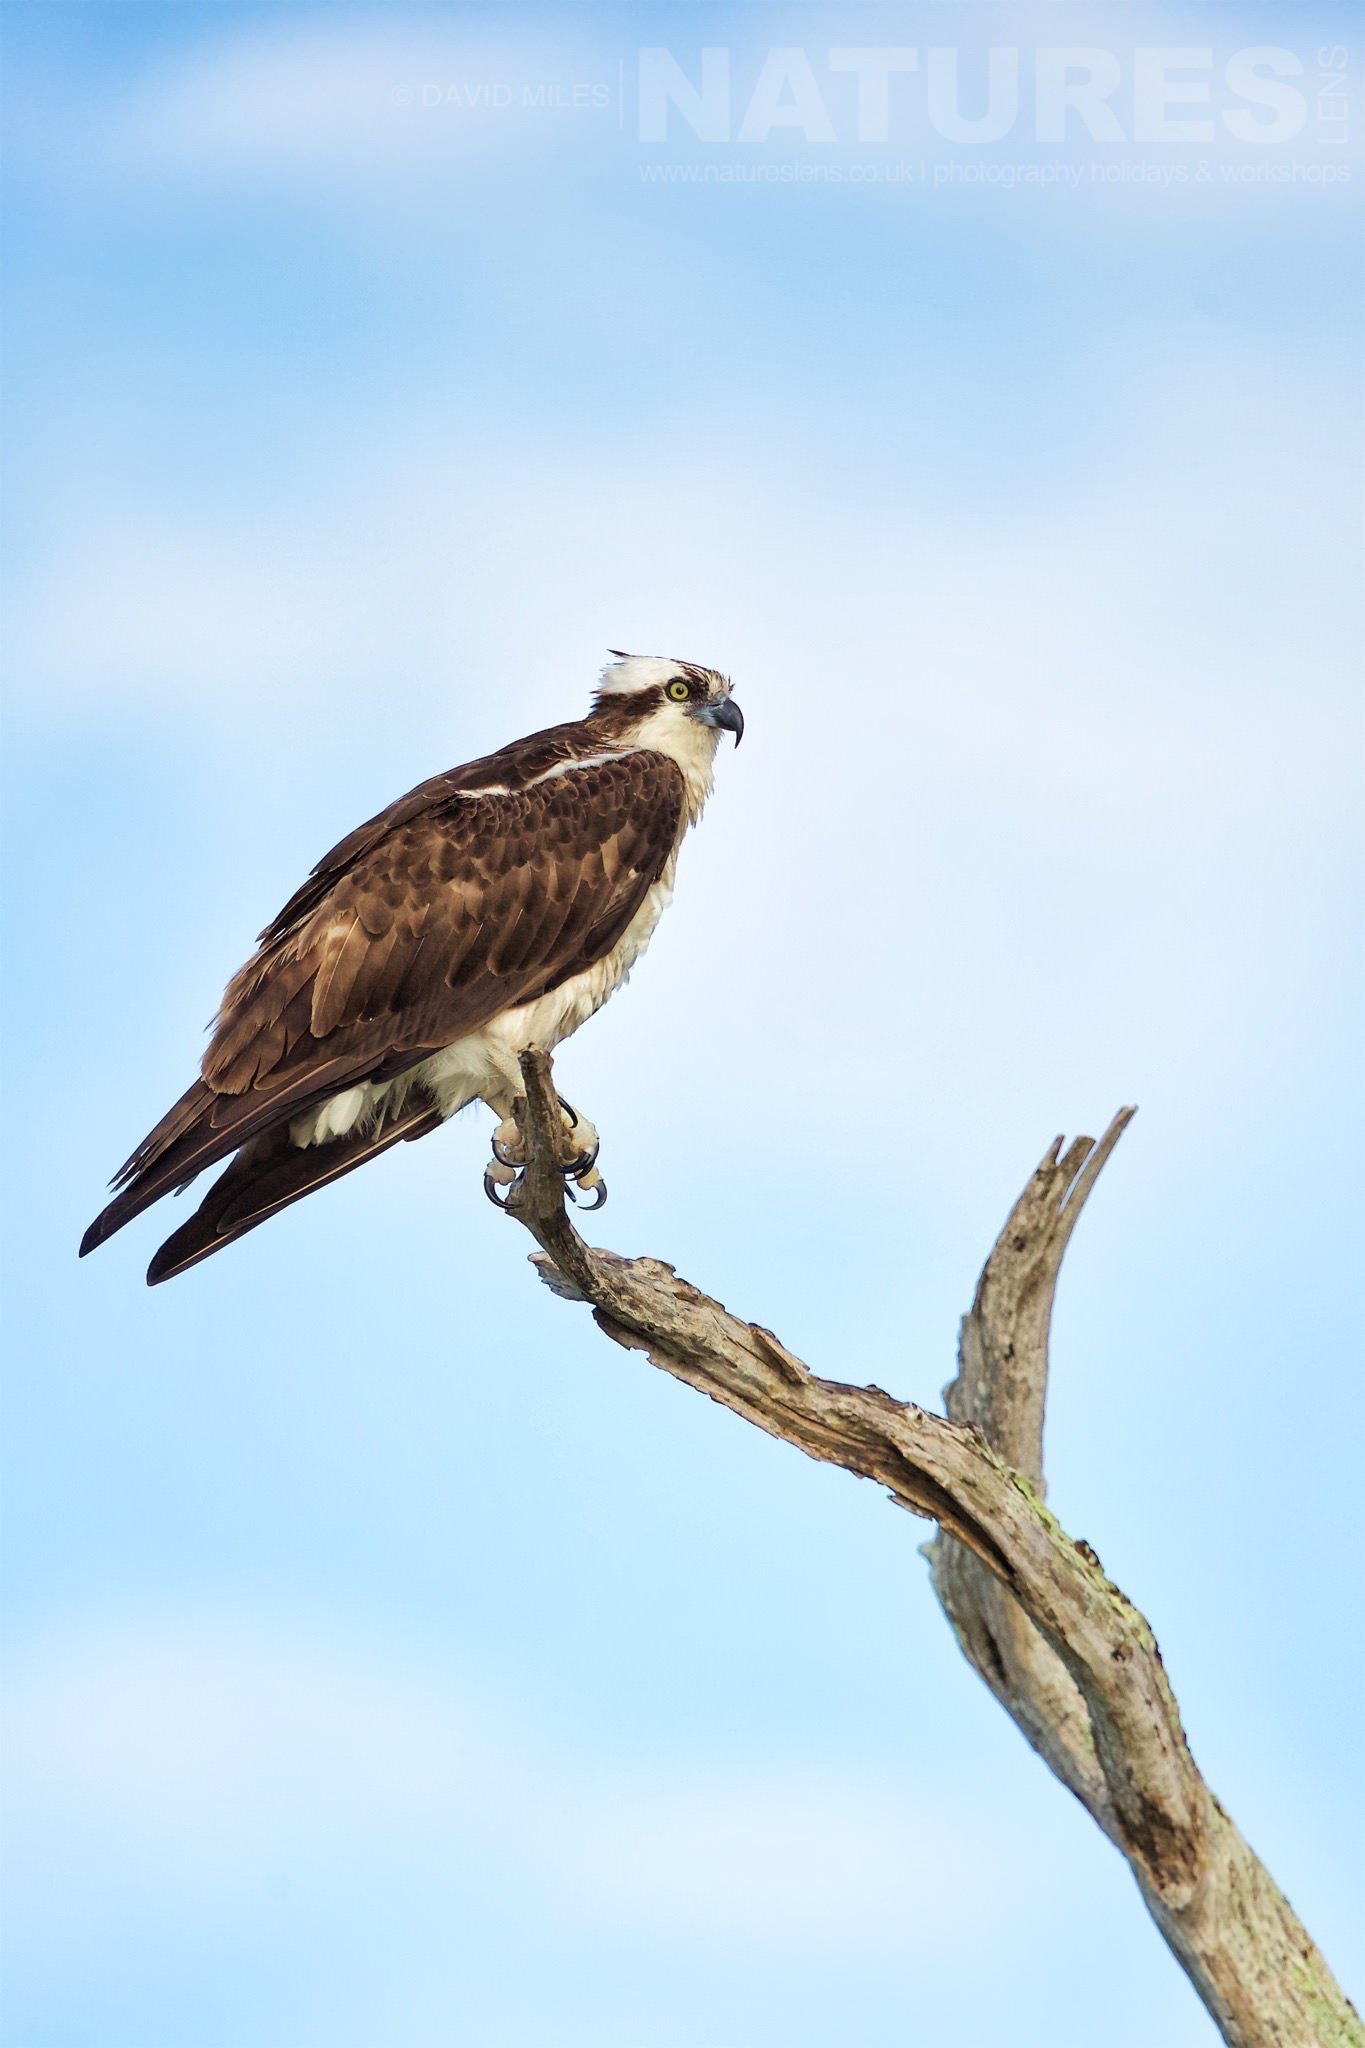 An Osprey Perches At The Top Of One Of The Cypress Trees Photographed On The NatureLens Ospreys Of Blue Cypress Lake Photography Holiday